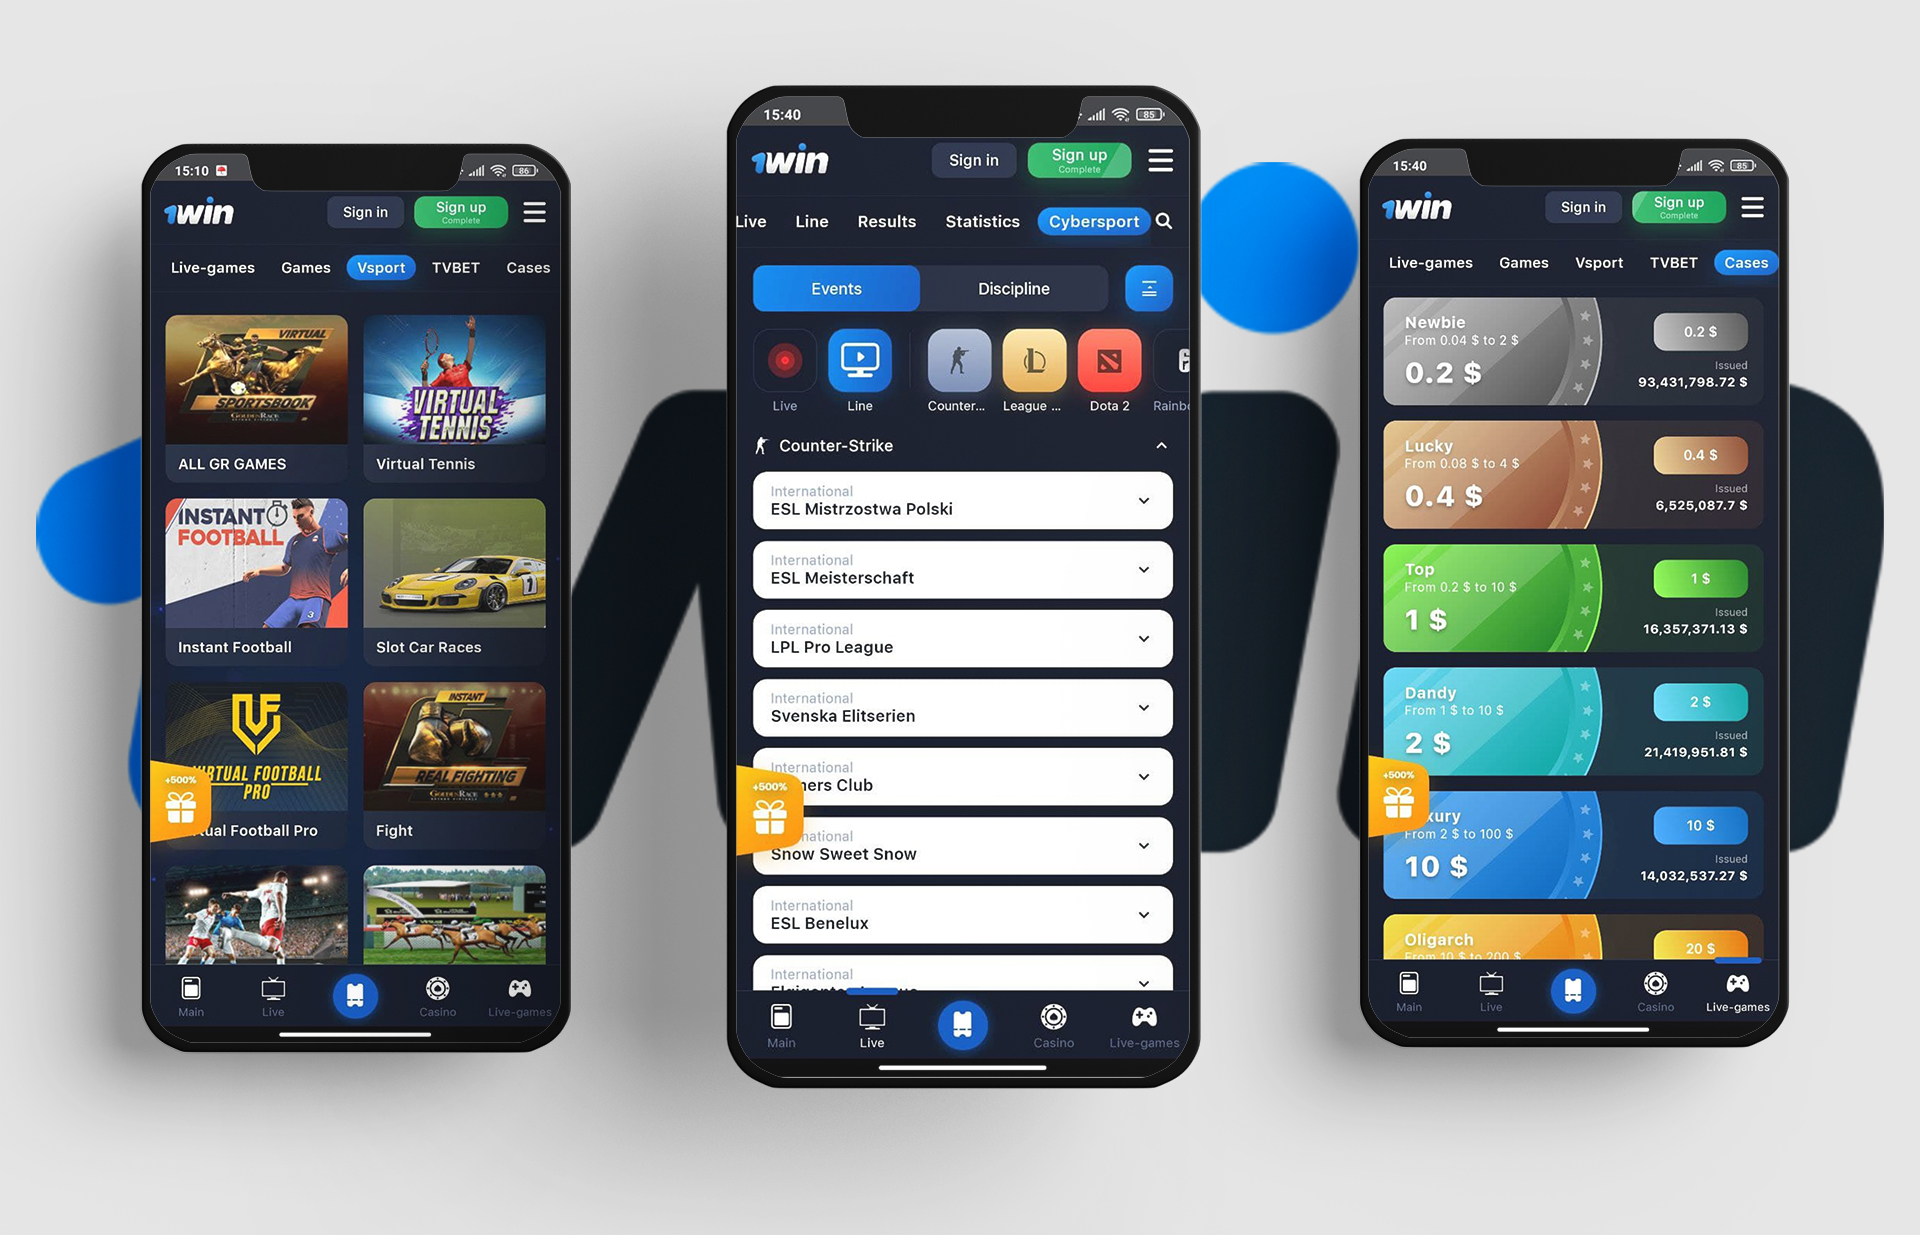 You can bet on cricket and play casino games at 1win app via your mobile phone.